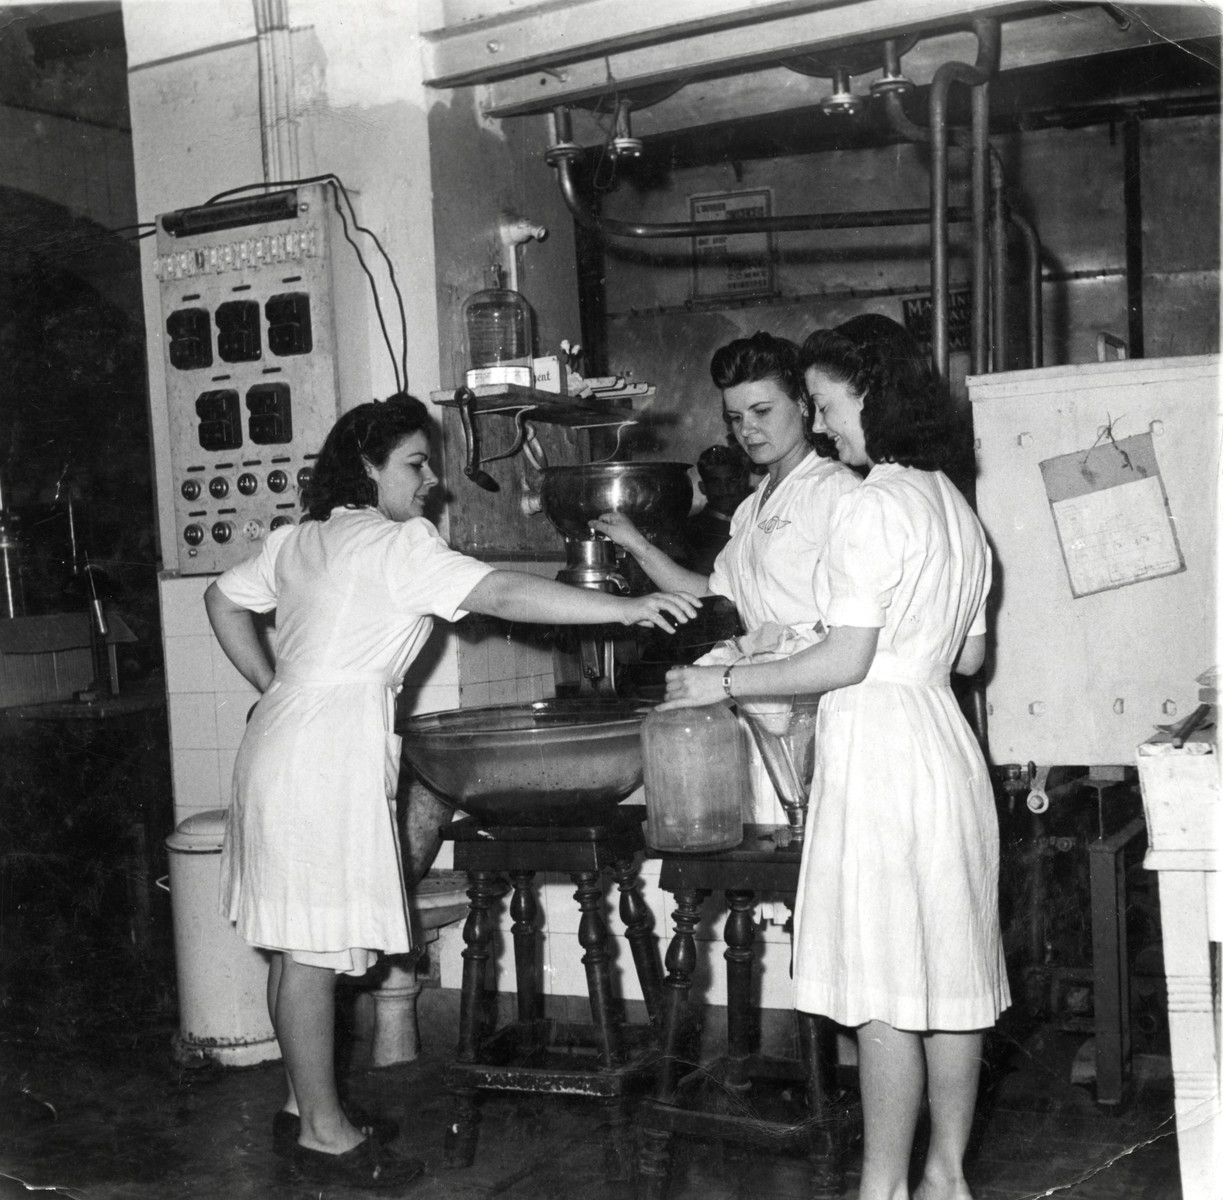 Female phamacists prepare medicine in Josef Cheraki's pharmacy in Algiers.